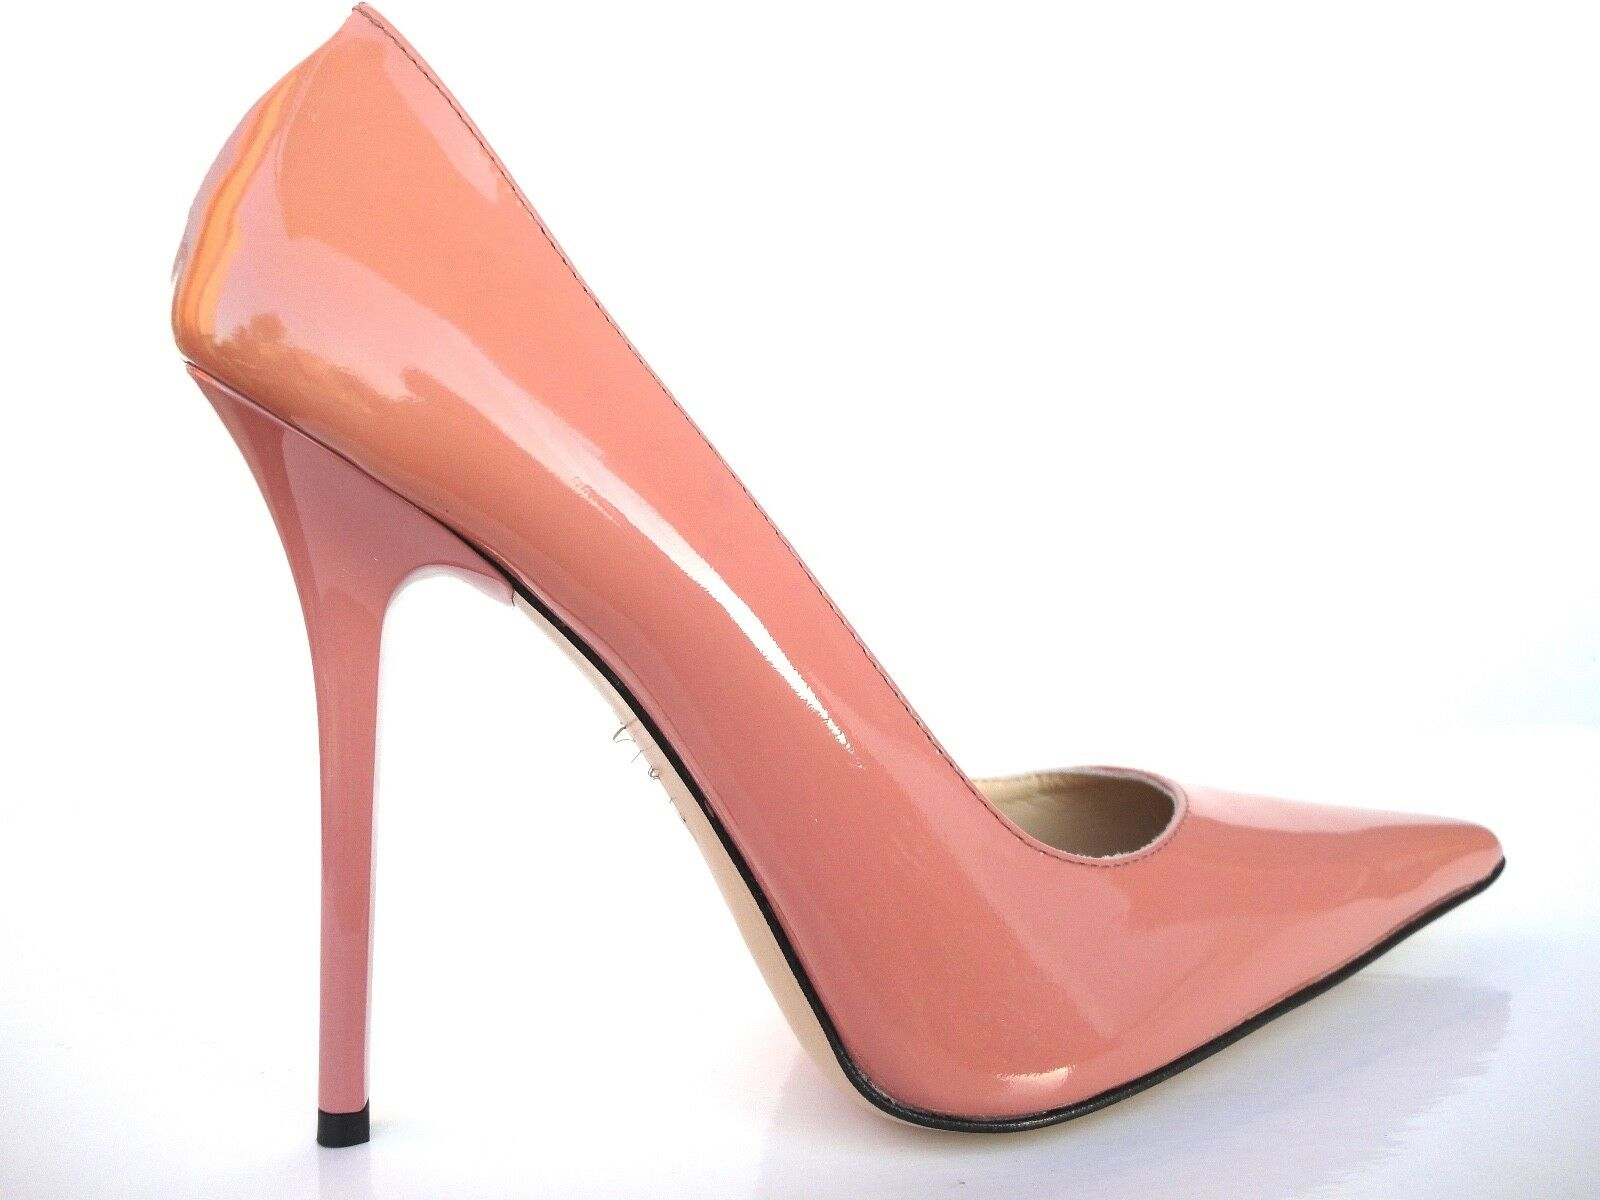 GIOHEL ITALIA HEELS POINTY TOE PUMPS shows Leather court shows PiNK NUDE